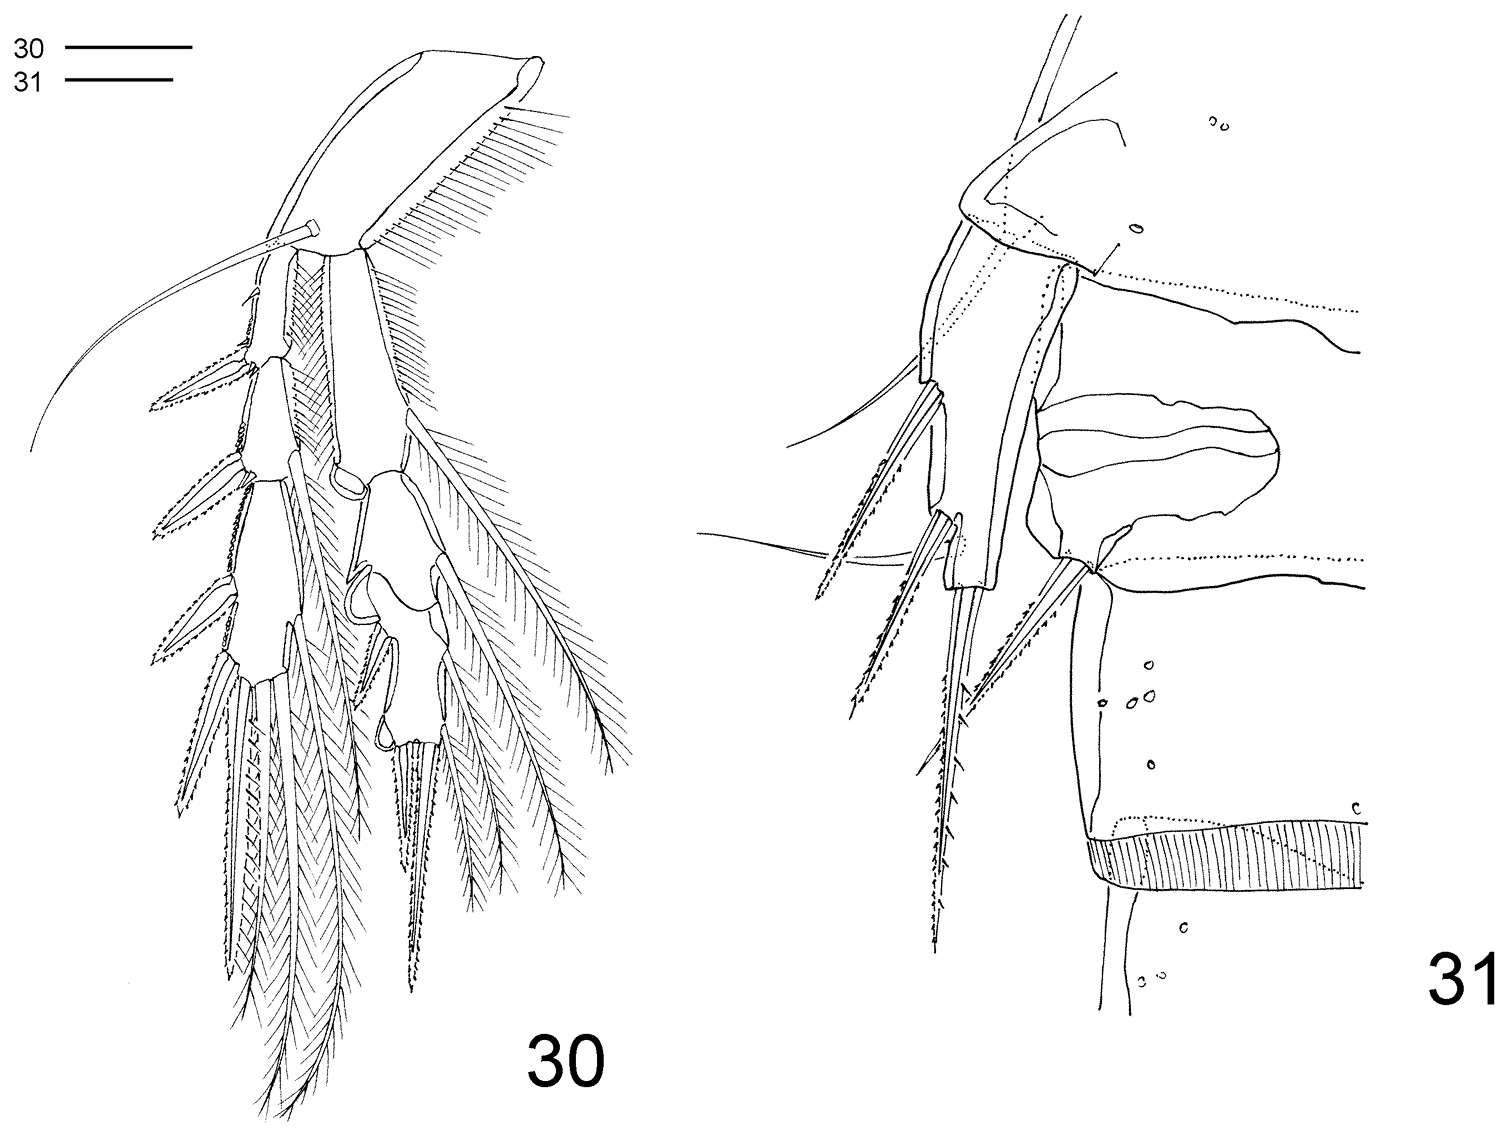 First Record Of Clausidium Copepoda Clausidiidae From Brazil A 2001 Toyota Sienna Fuse Box Diagram New Species Associated With Ghost Shrimps Neocallichirus Grandimana Gibbes